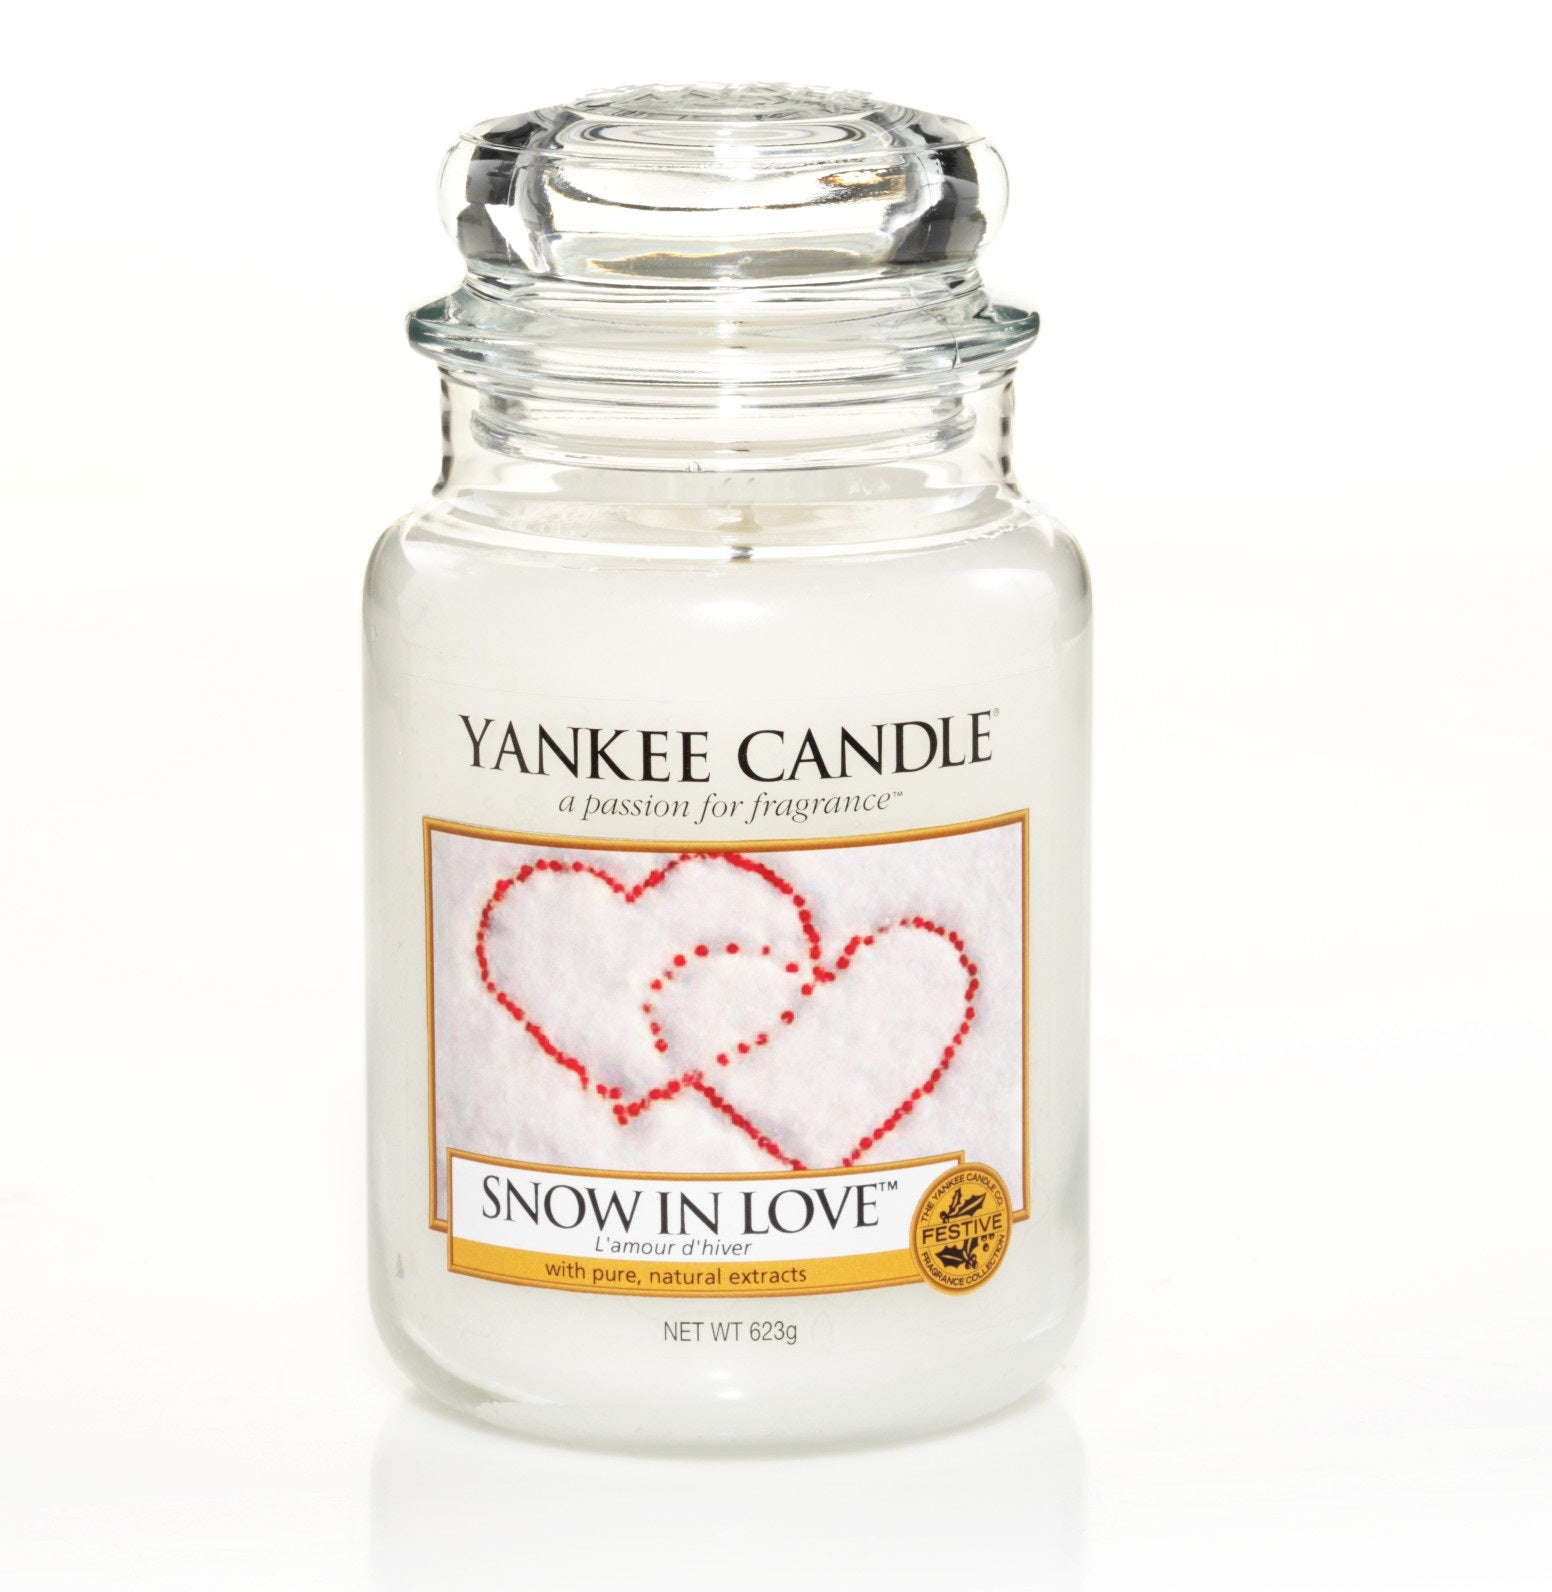 SNOW IN LOVE -Yankee Candle- Giara Grande